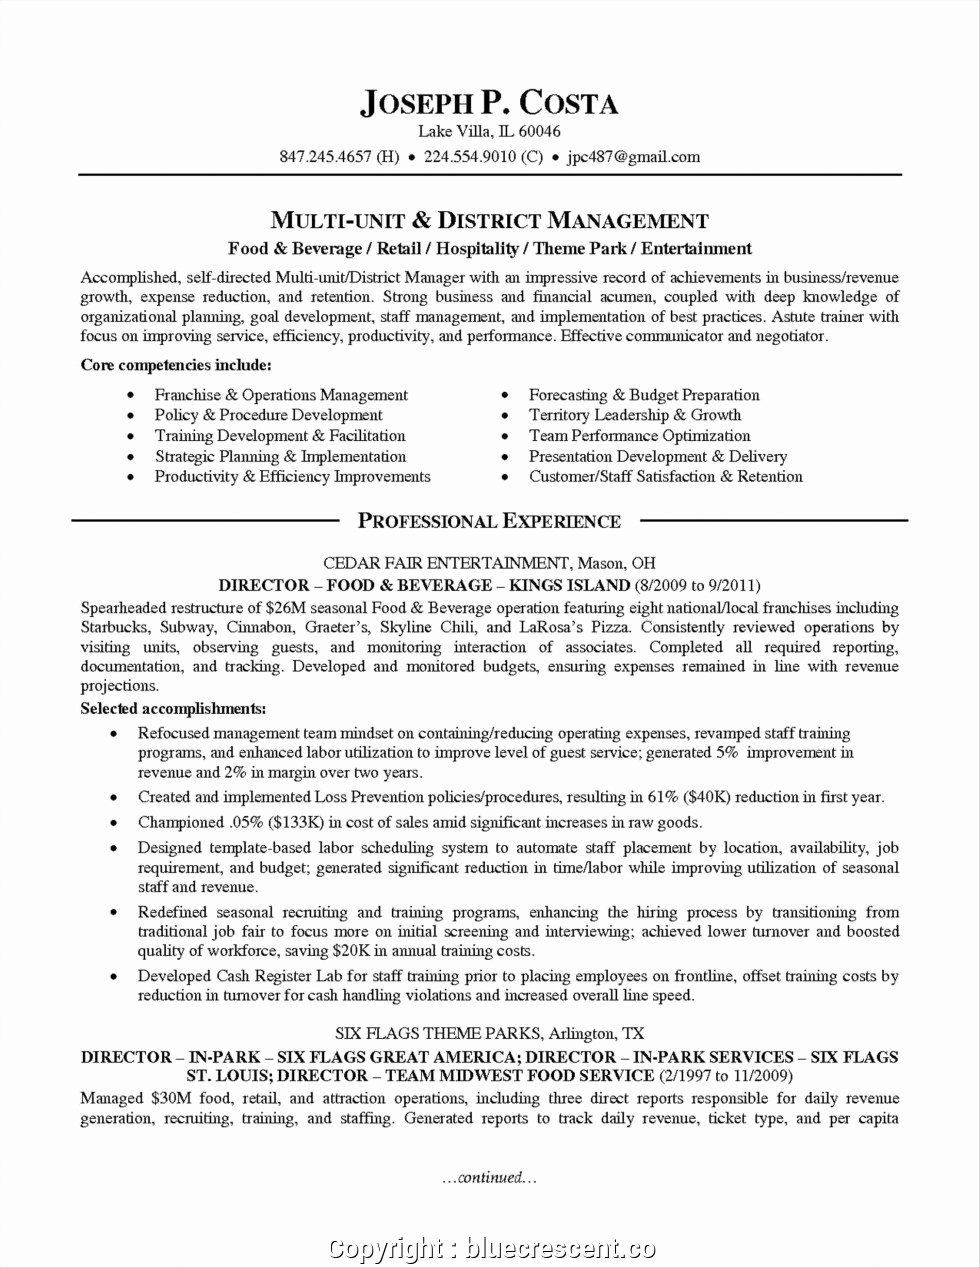 pin di best resume food beverage manager office word template free nursing goals and Resume Food & Beverage Manager Resume